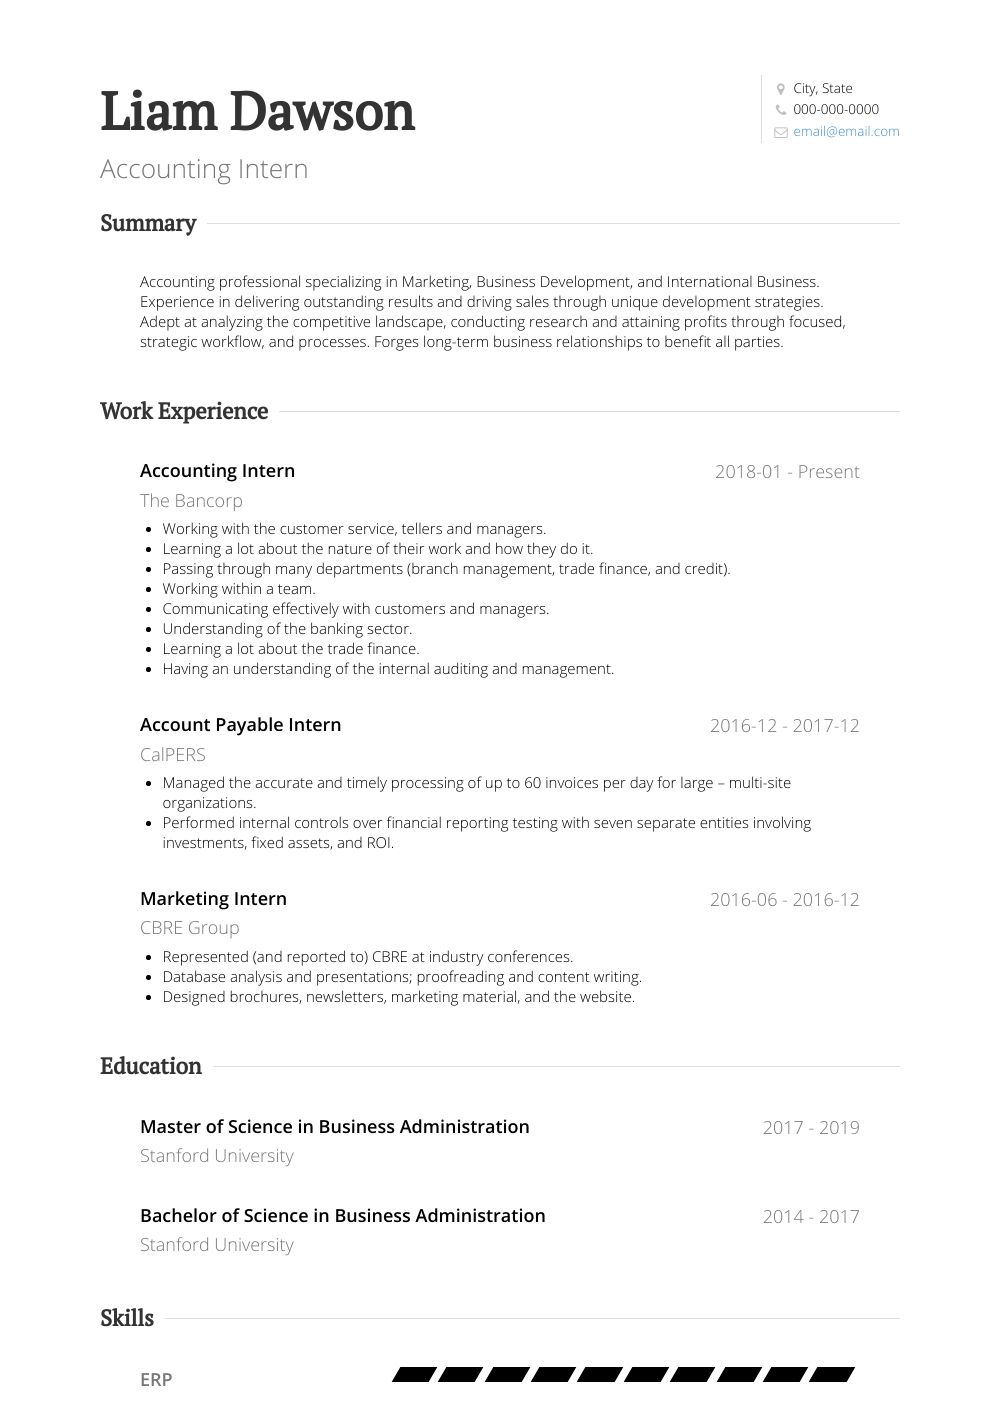 Accounting Intern Resume Sample and Template